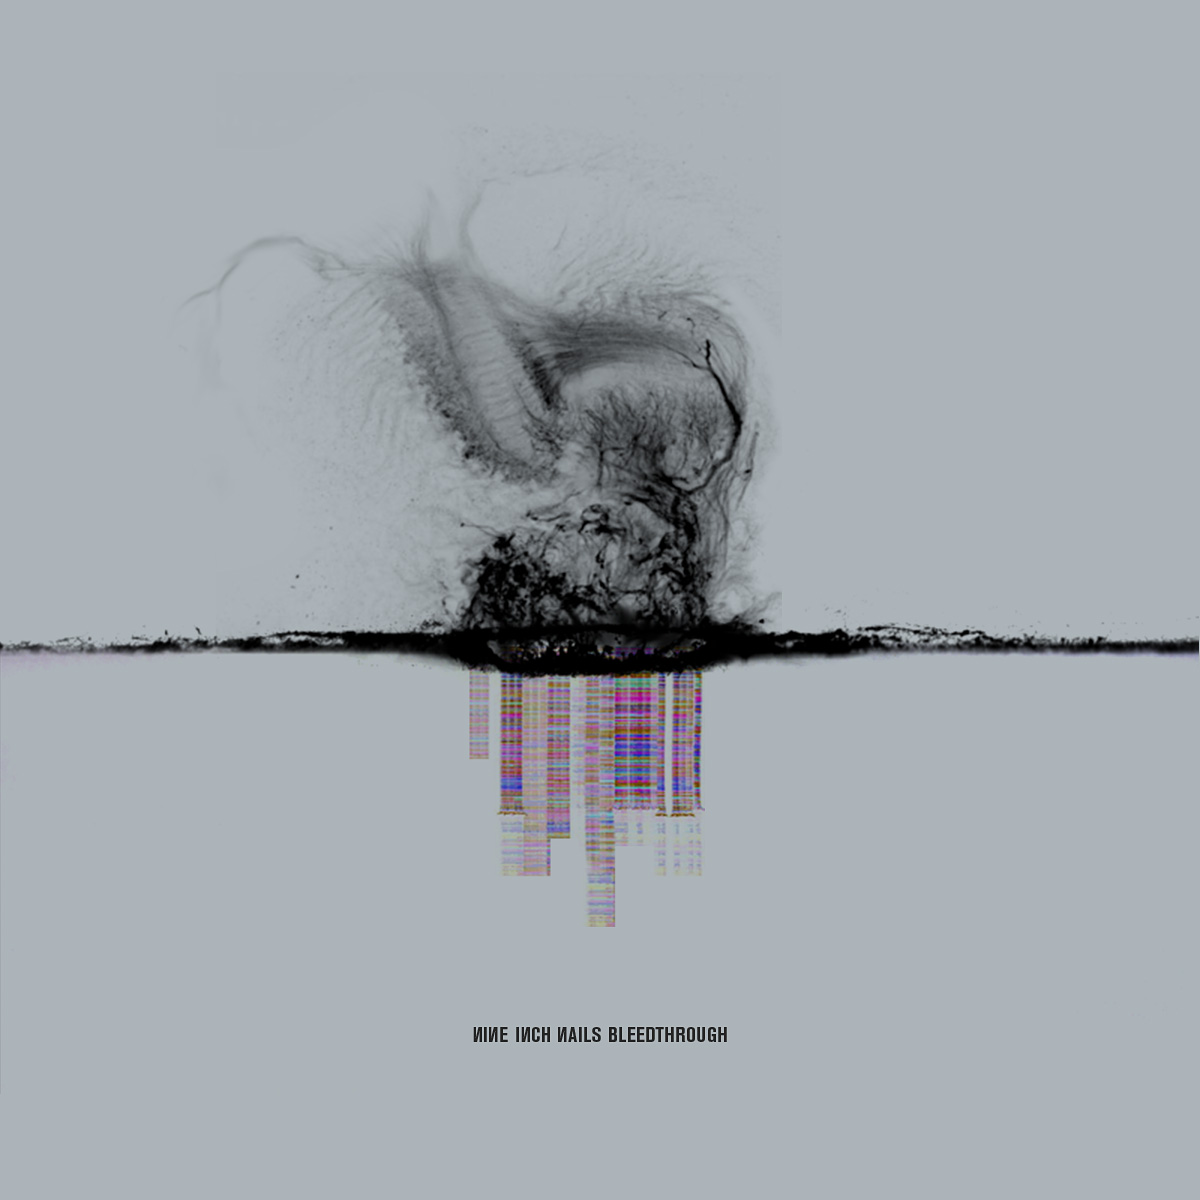 Working Title Bleedthrough Concept Artwork For Nine Inch Nails